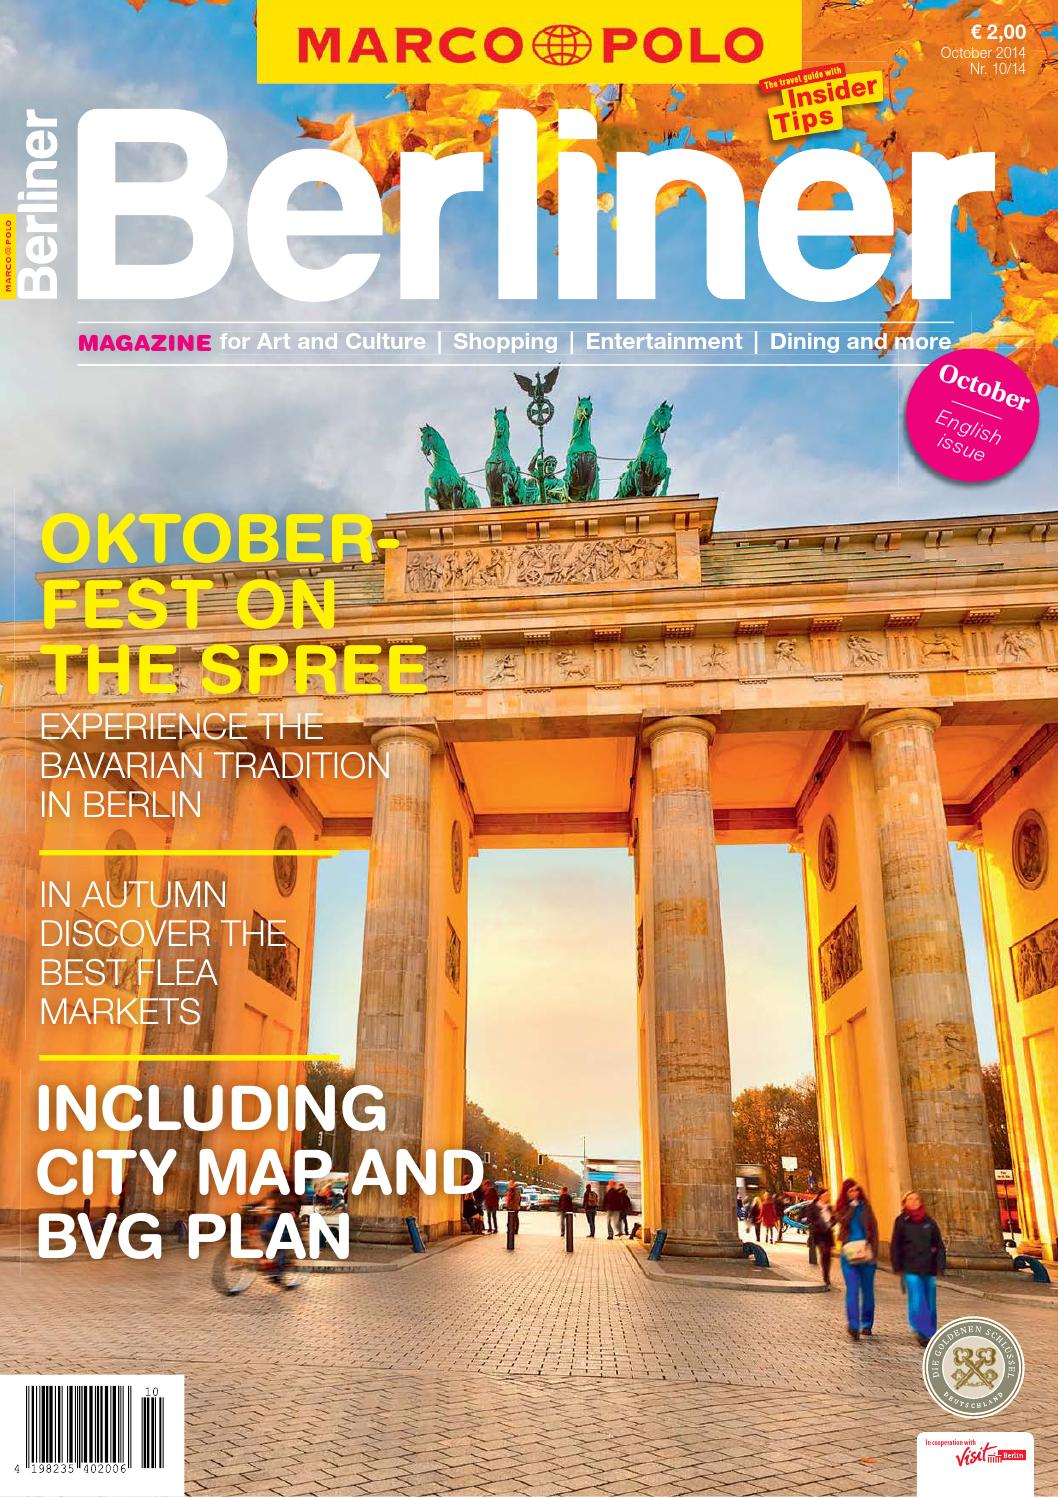 English - MARCO POLO BERLINER 10/14 by Berlin Medien GmbH - issuu